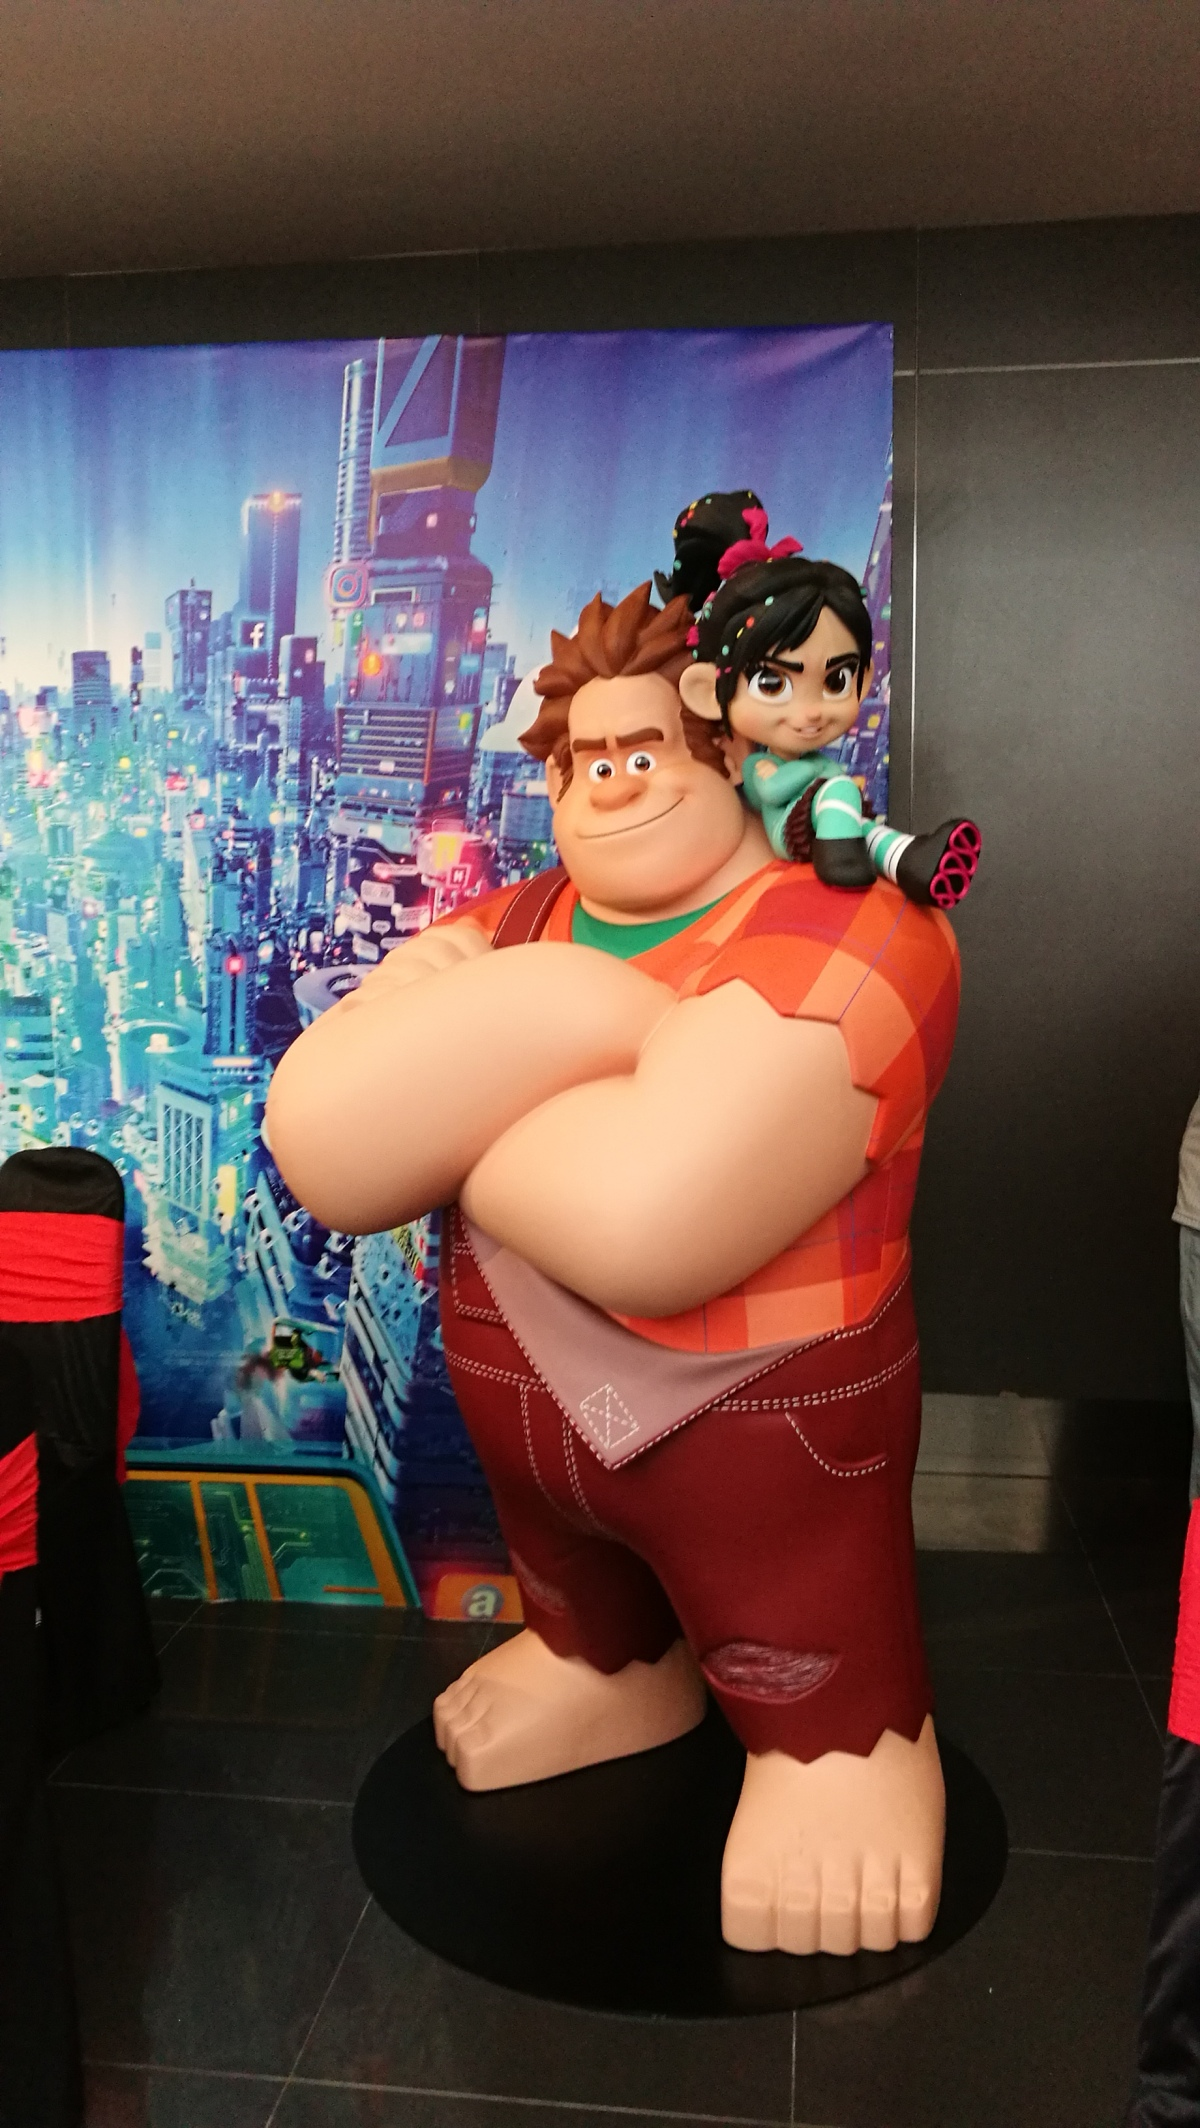 Keep your insecurity in check – Review for Wreck-it Ralph 2